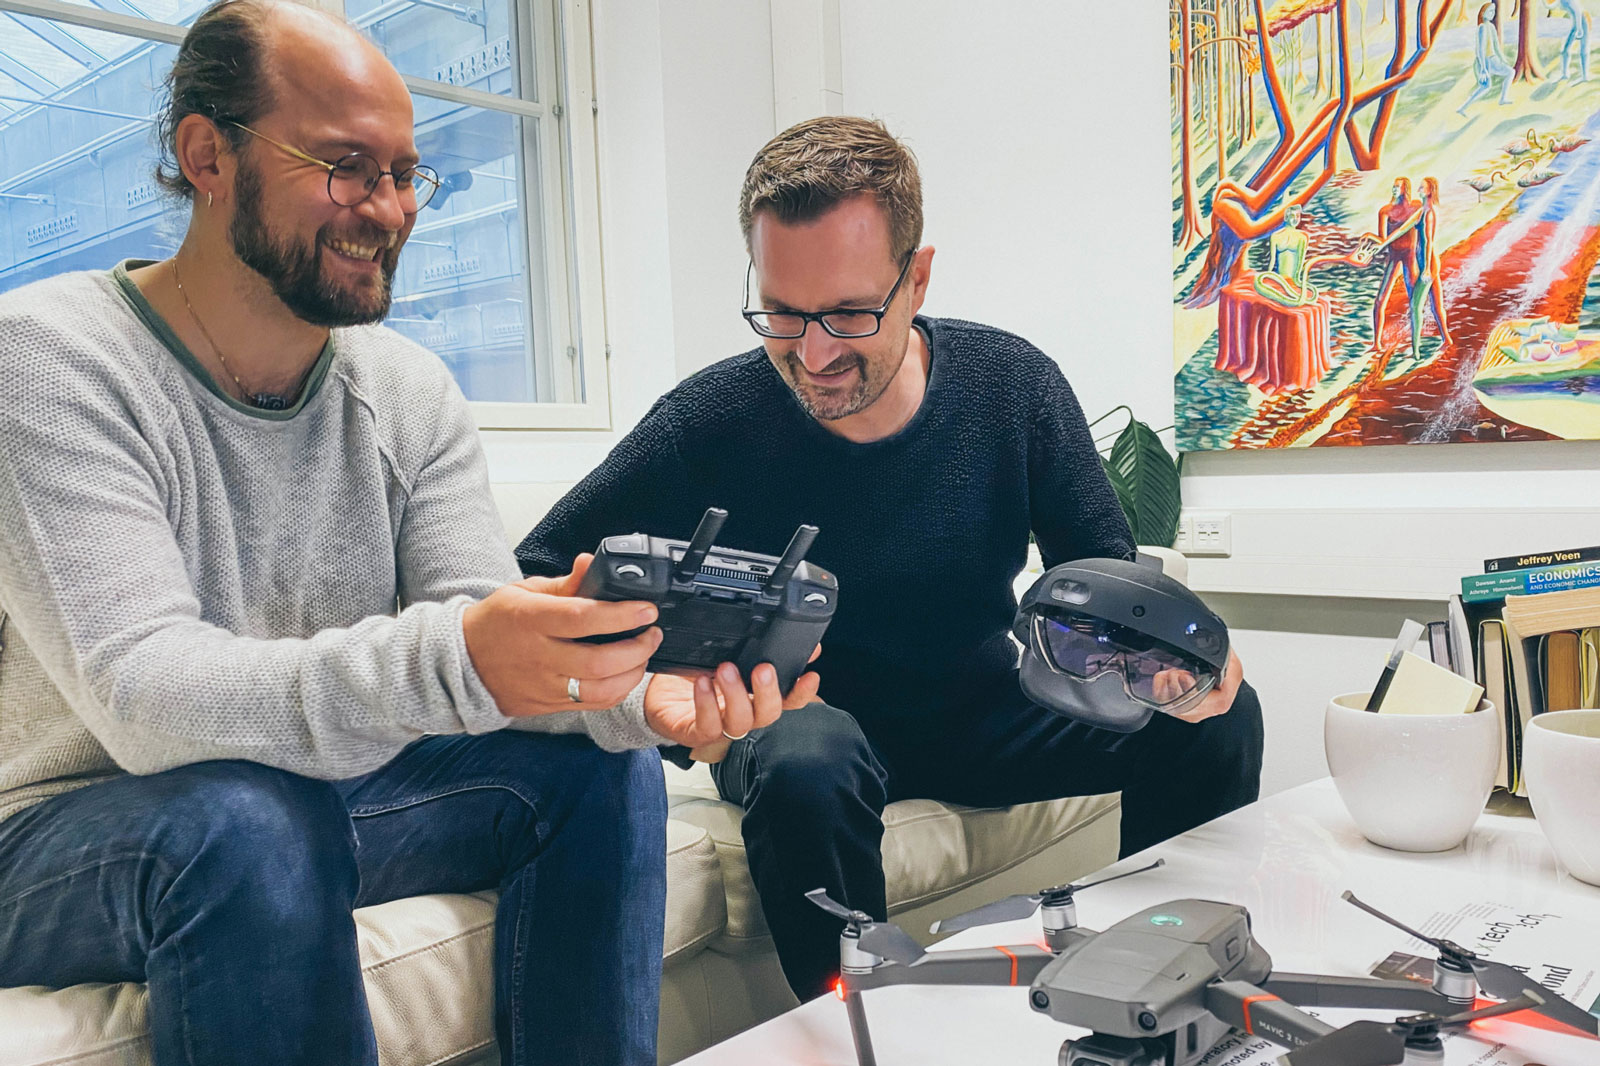 Lassi Immonen and Hannu Lesonen from Anarky Labs examining drone controllers. Both are wearing glasses, solid-coloured clothes, and are smiling.